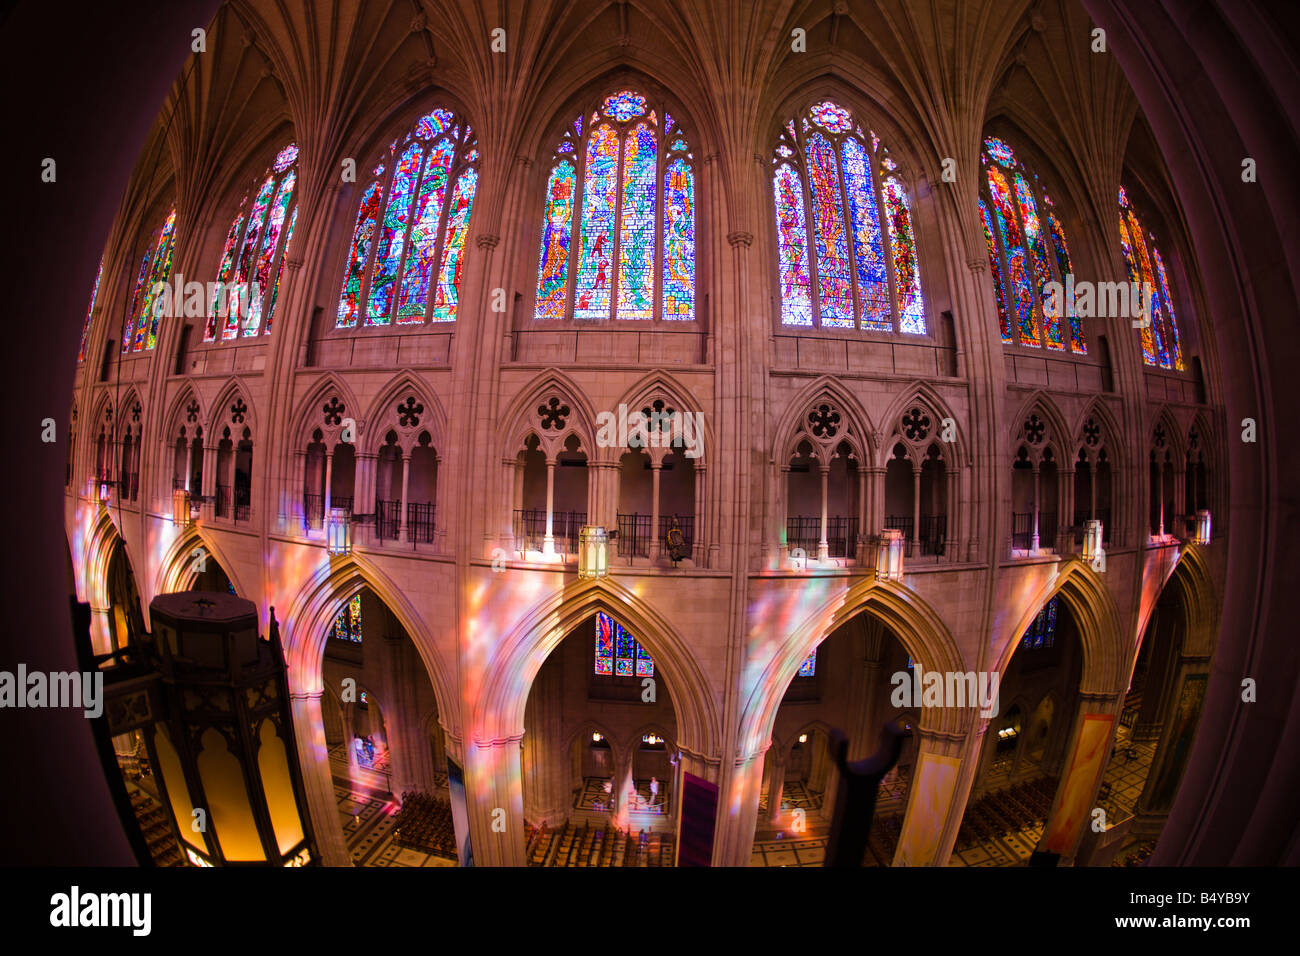 Interior Of The Washington National Cathedral In